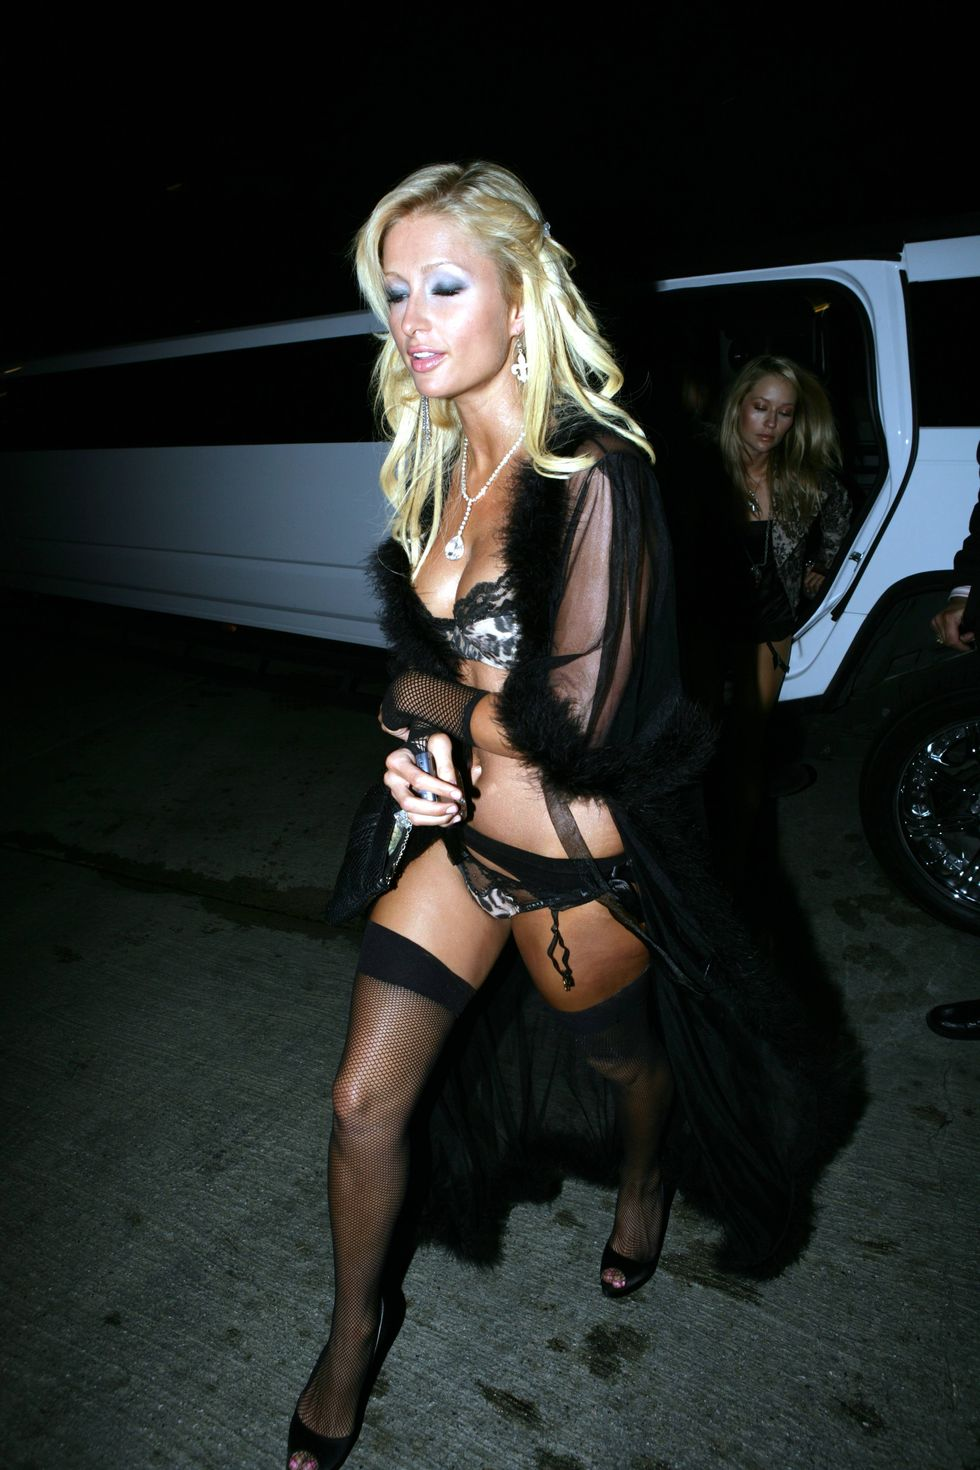 paris-hilton-hugh-hefners-80th-birthday-celebration-in-los-angeles-april-2006-01